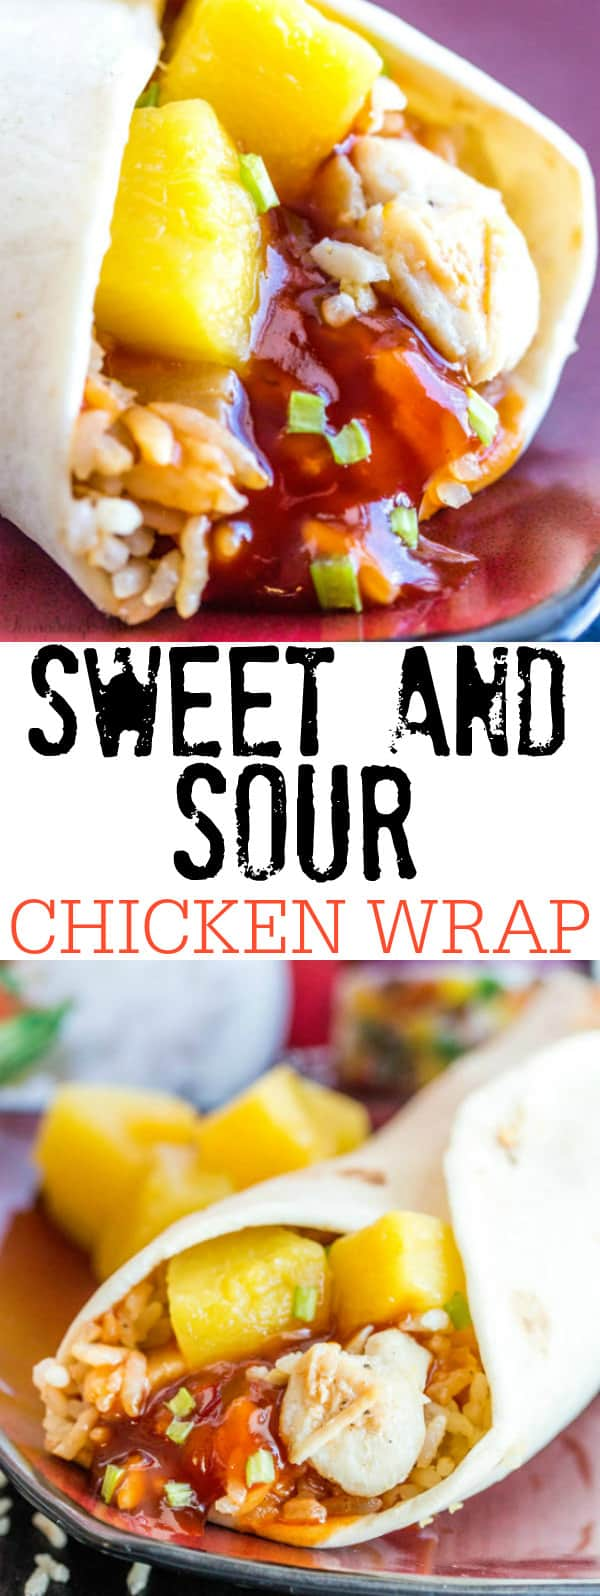 Sweet and Sour Chicken Wrap